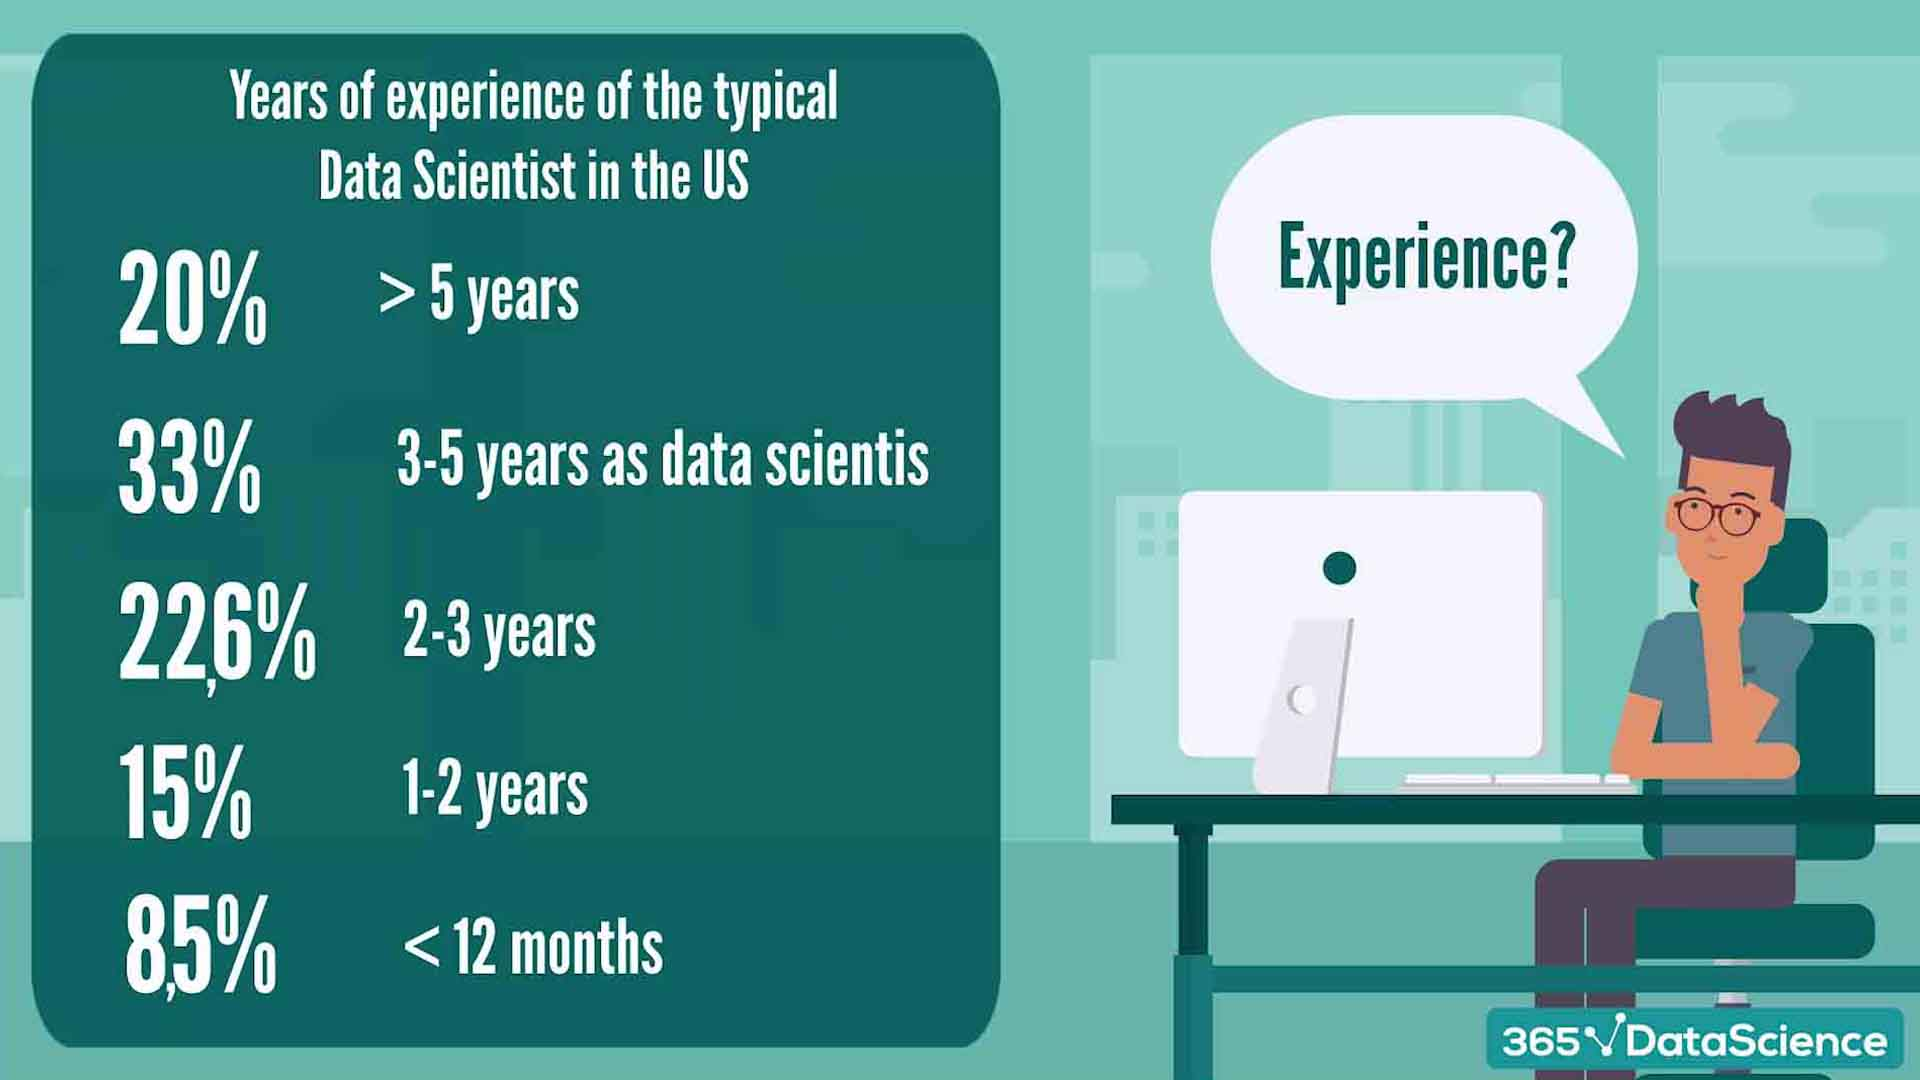 Required experience for data scientists in the US